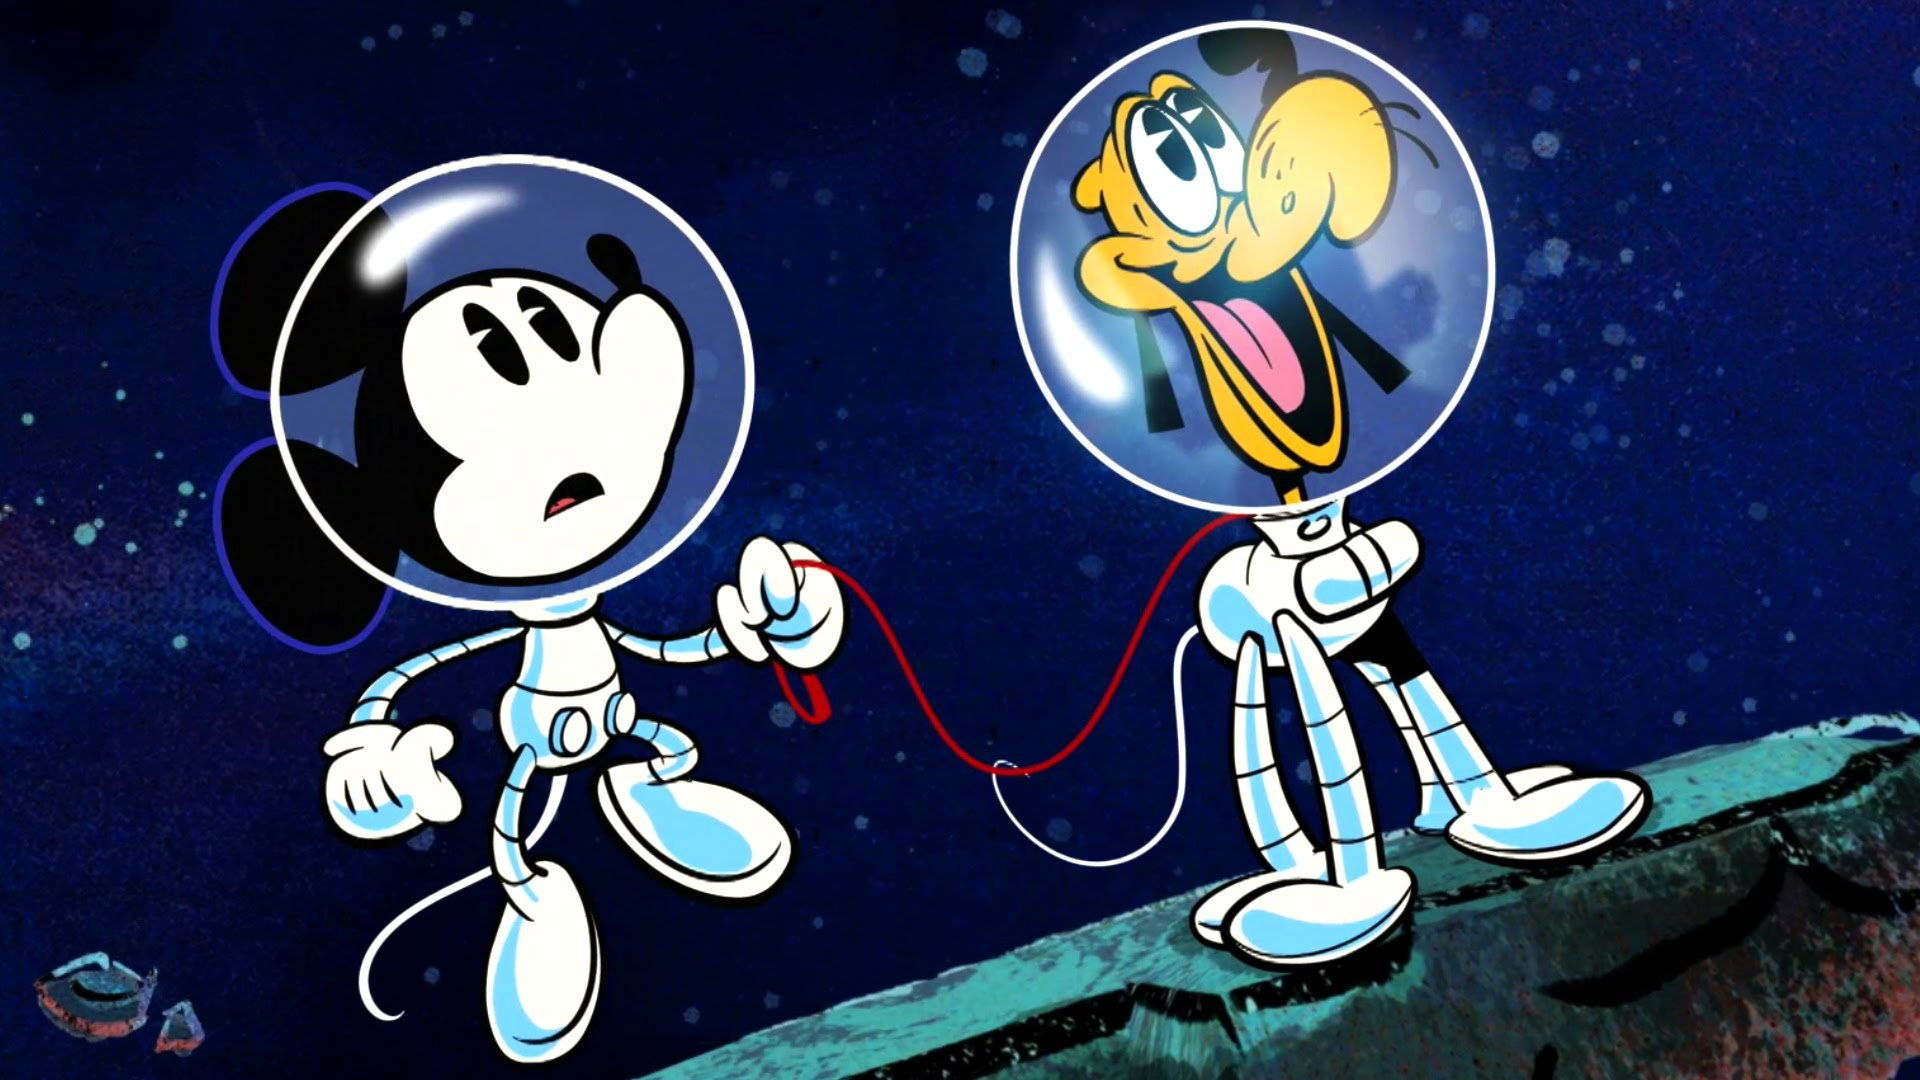 Space Walkies | A Mickey Mouse Cartoon